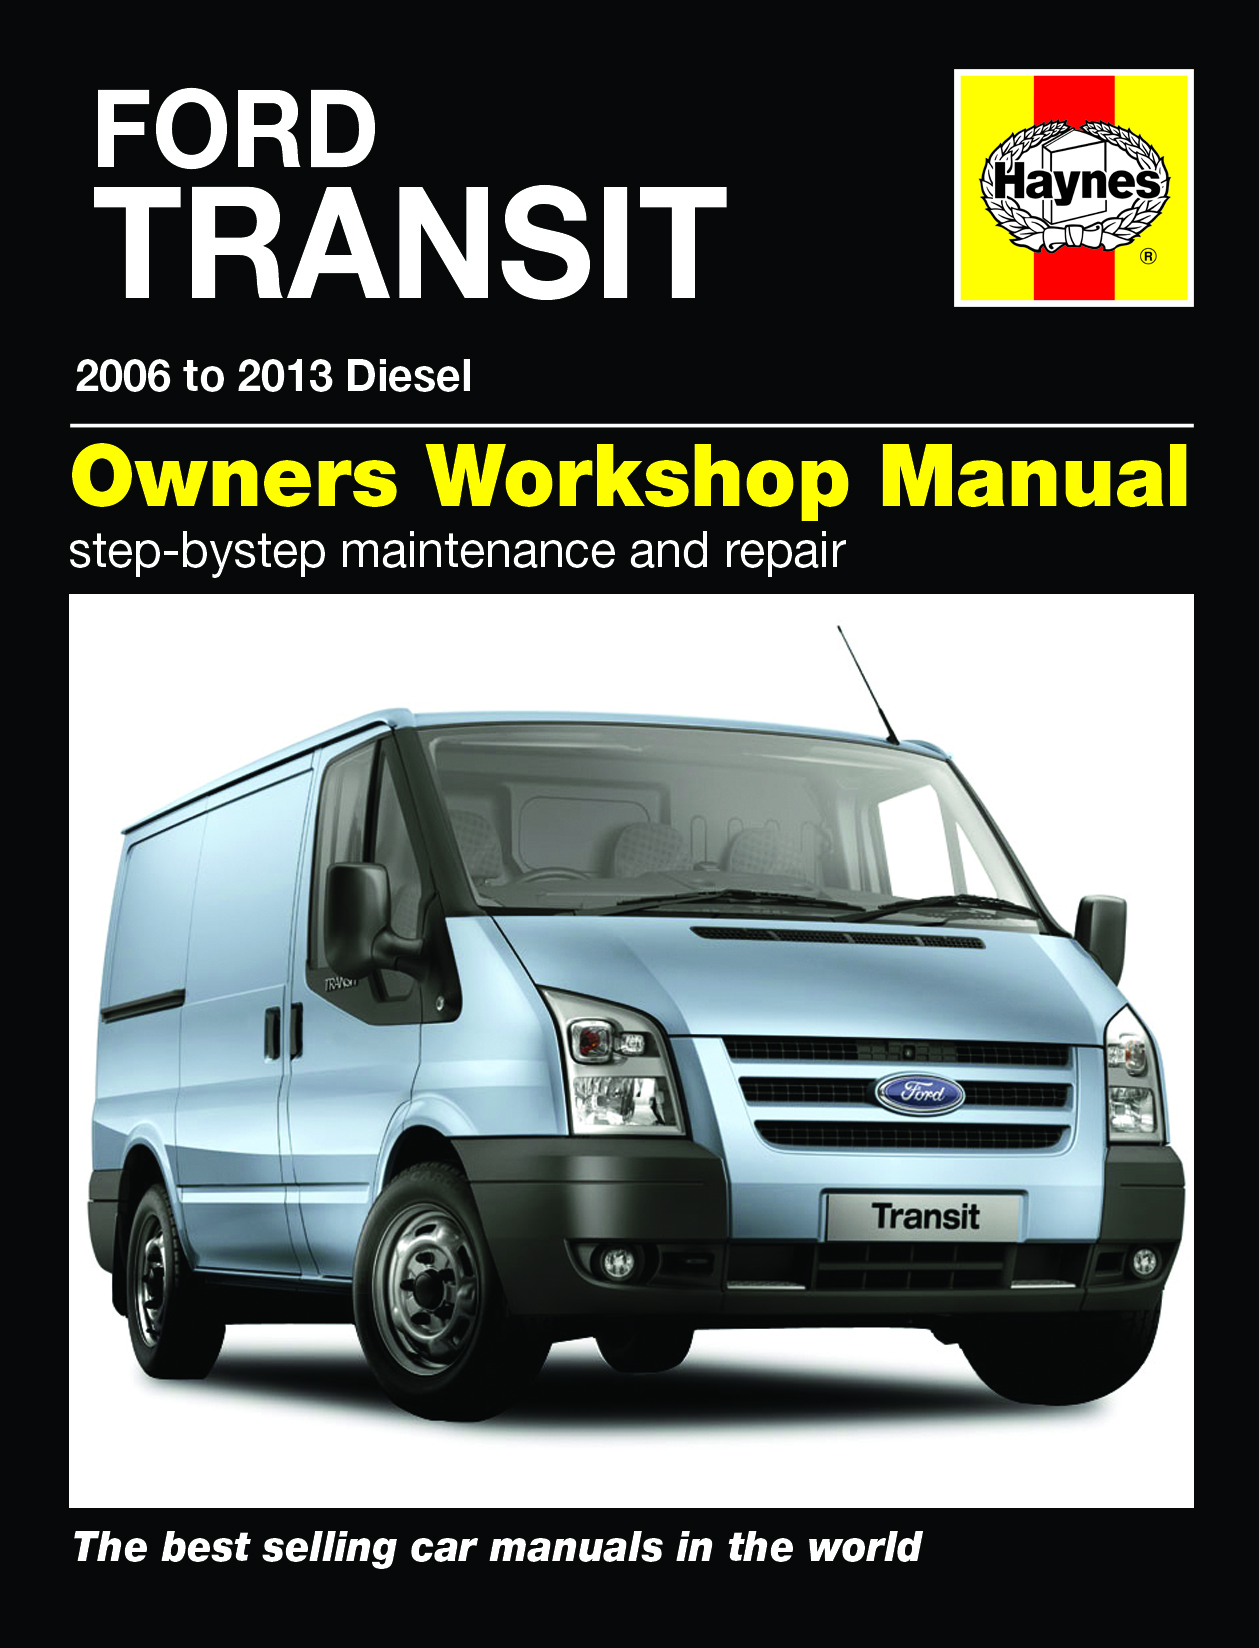 Ford transit diesel 2006 to 2013 haynes for 2013 mercedes benz e350 owners manual pdf